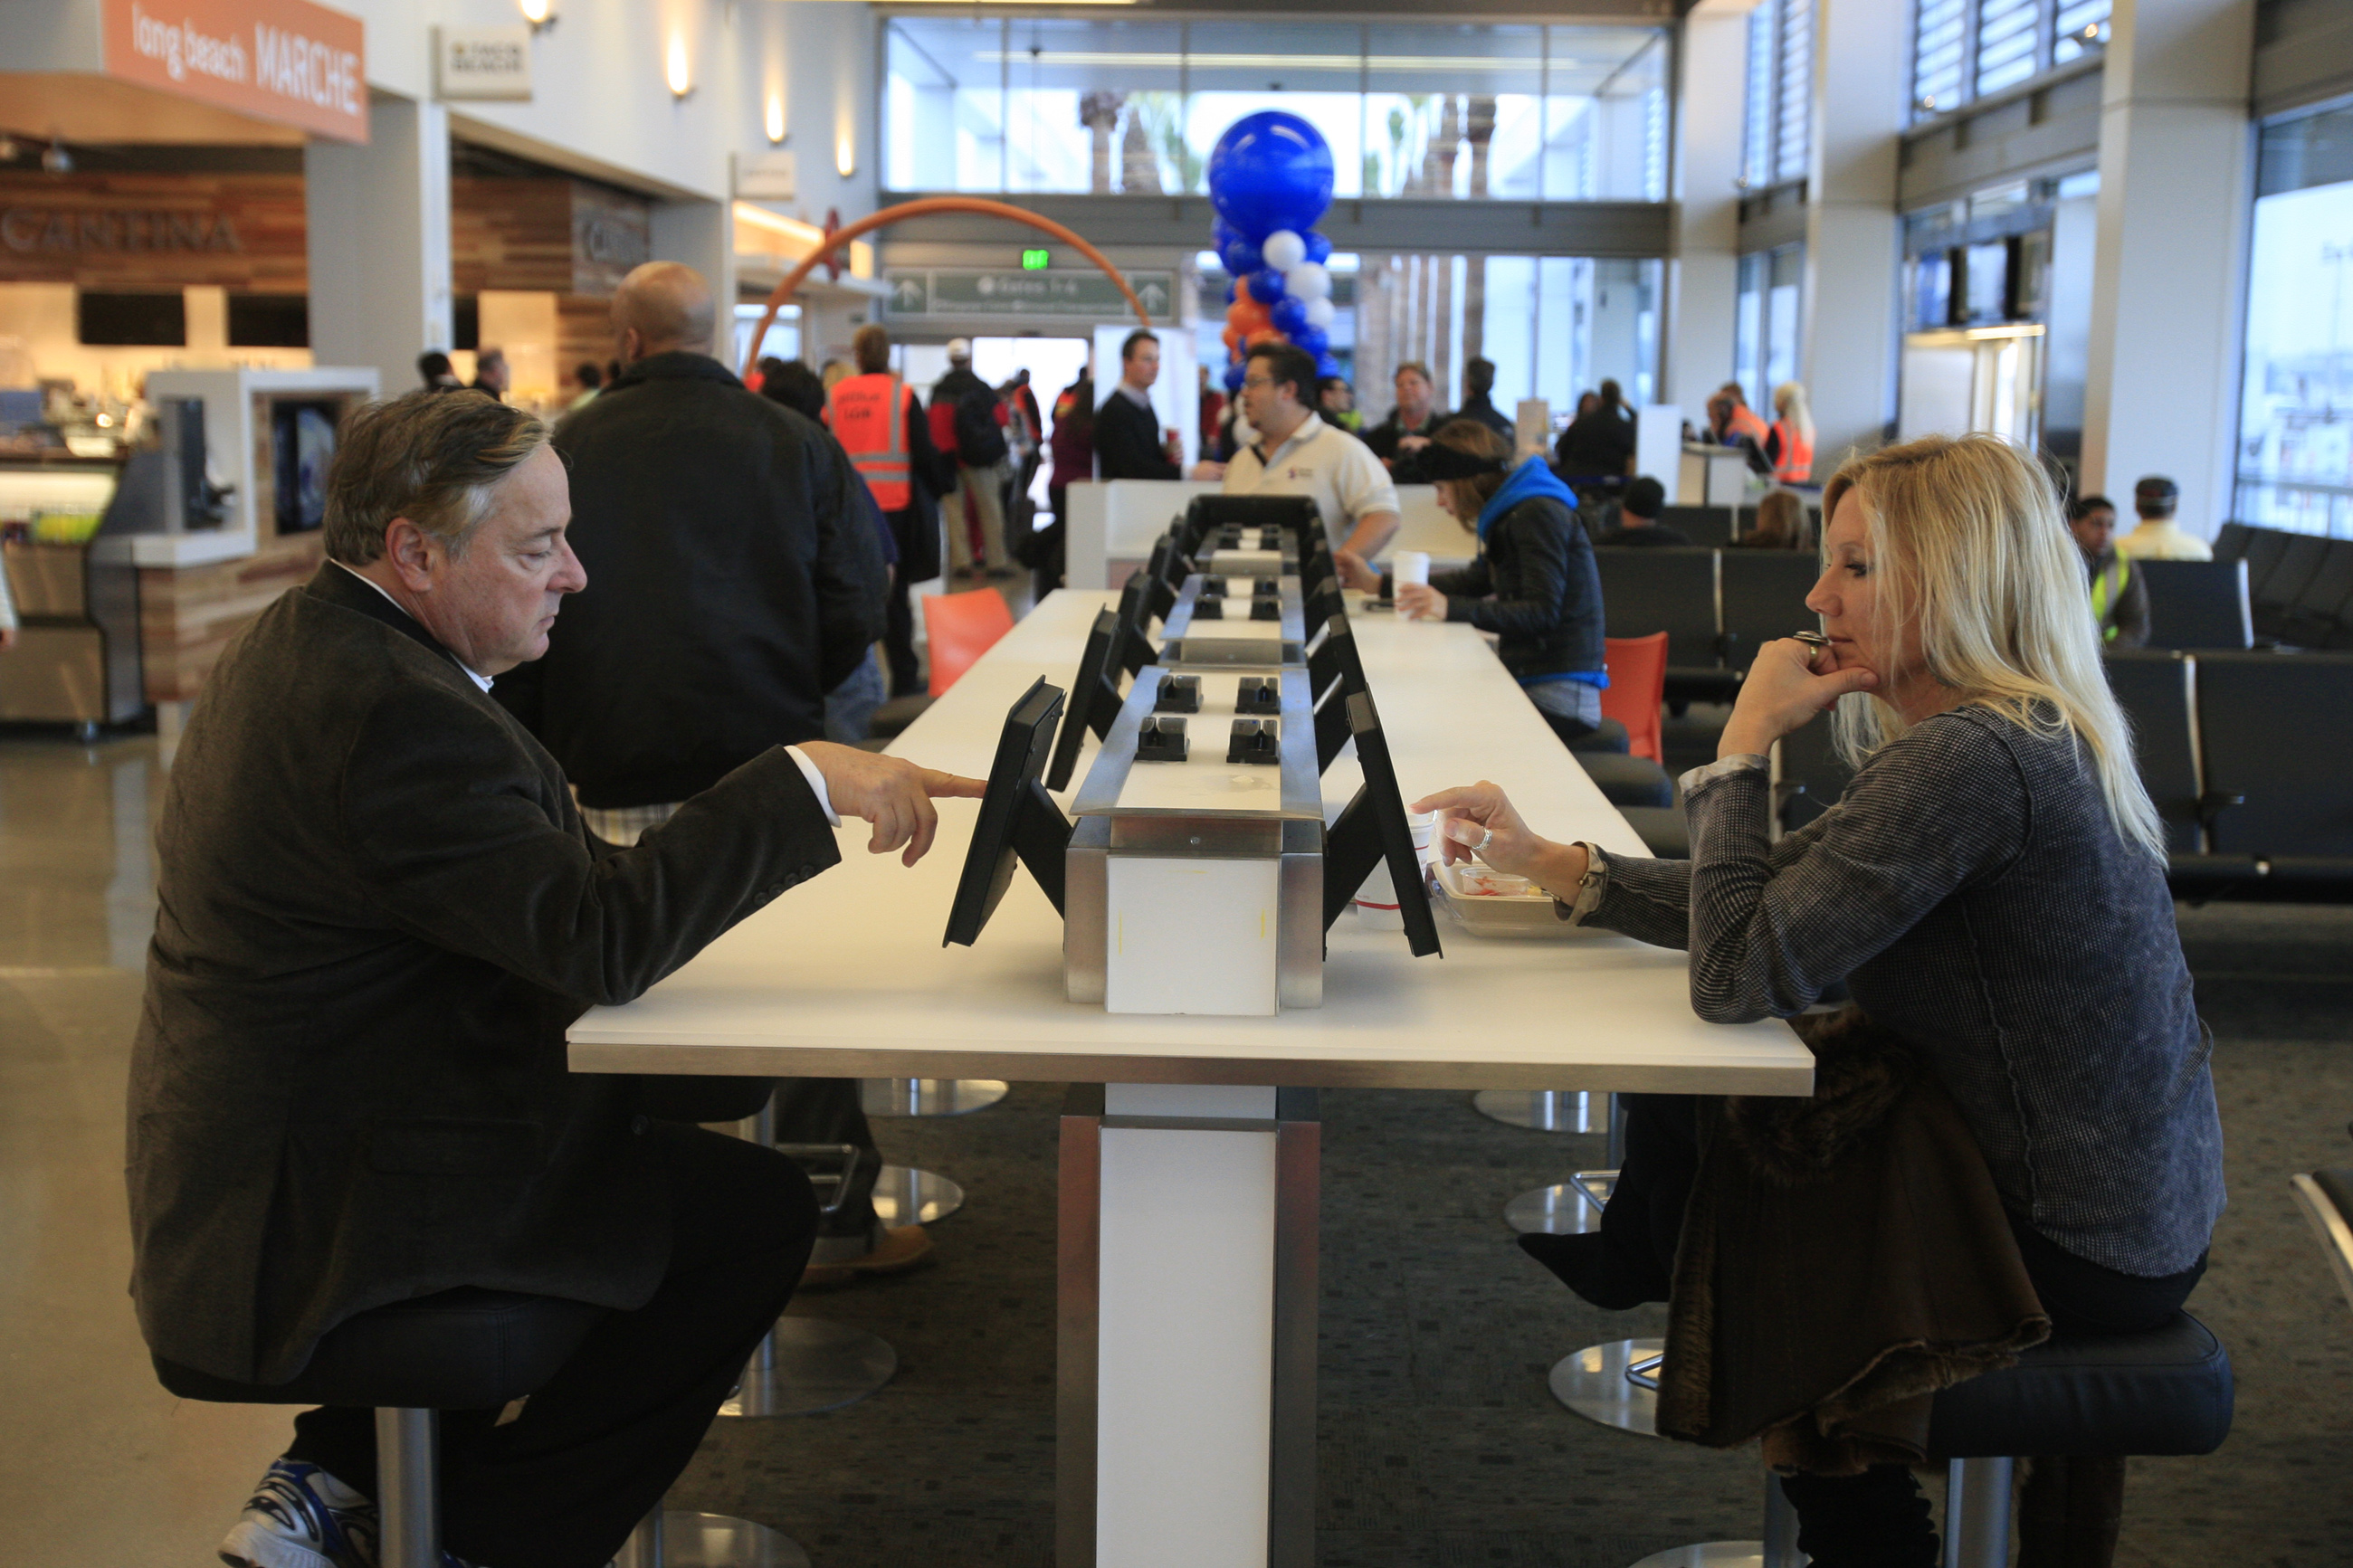 Travelers Steve Gould, left, of Tustin, and Diane Armitage, of Laguna Beach, check out new iPads wh